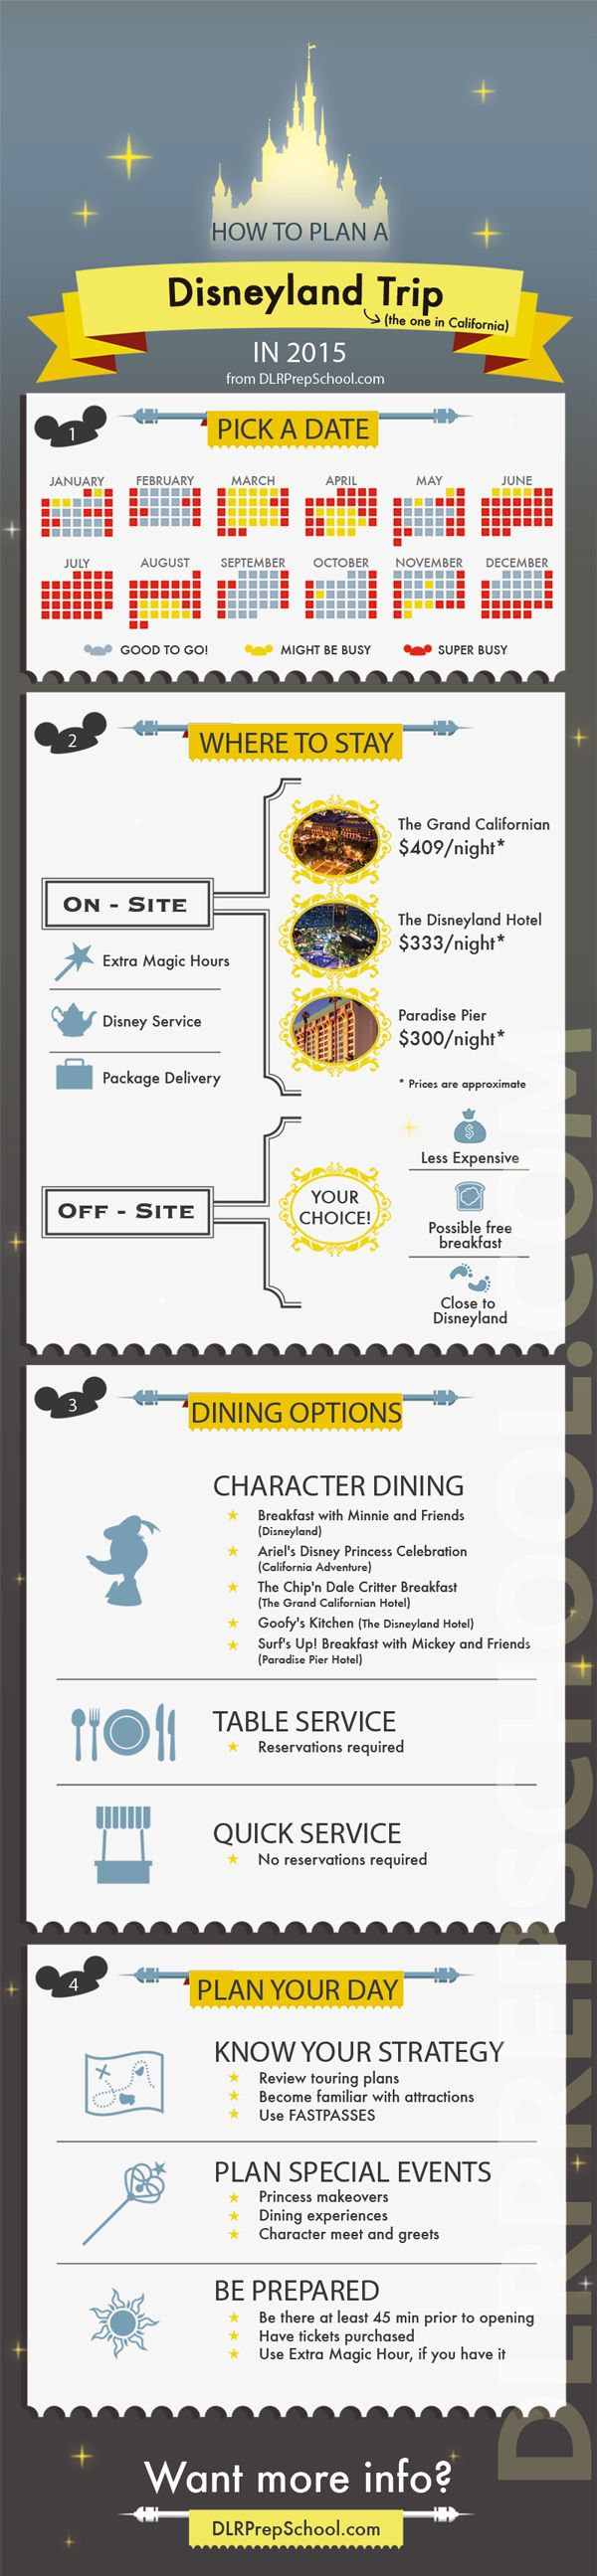 Infographic: How to plan a Disneyland trip